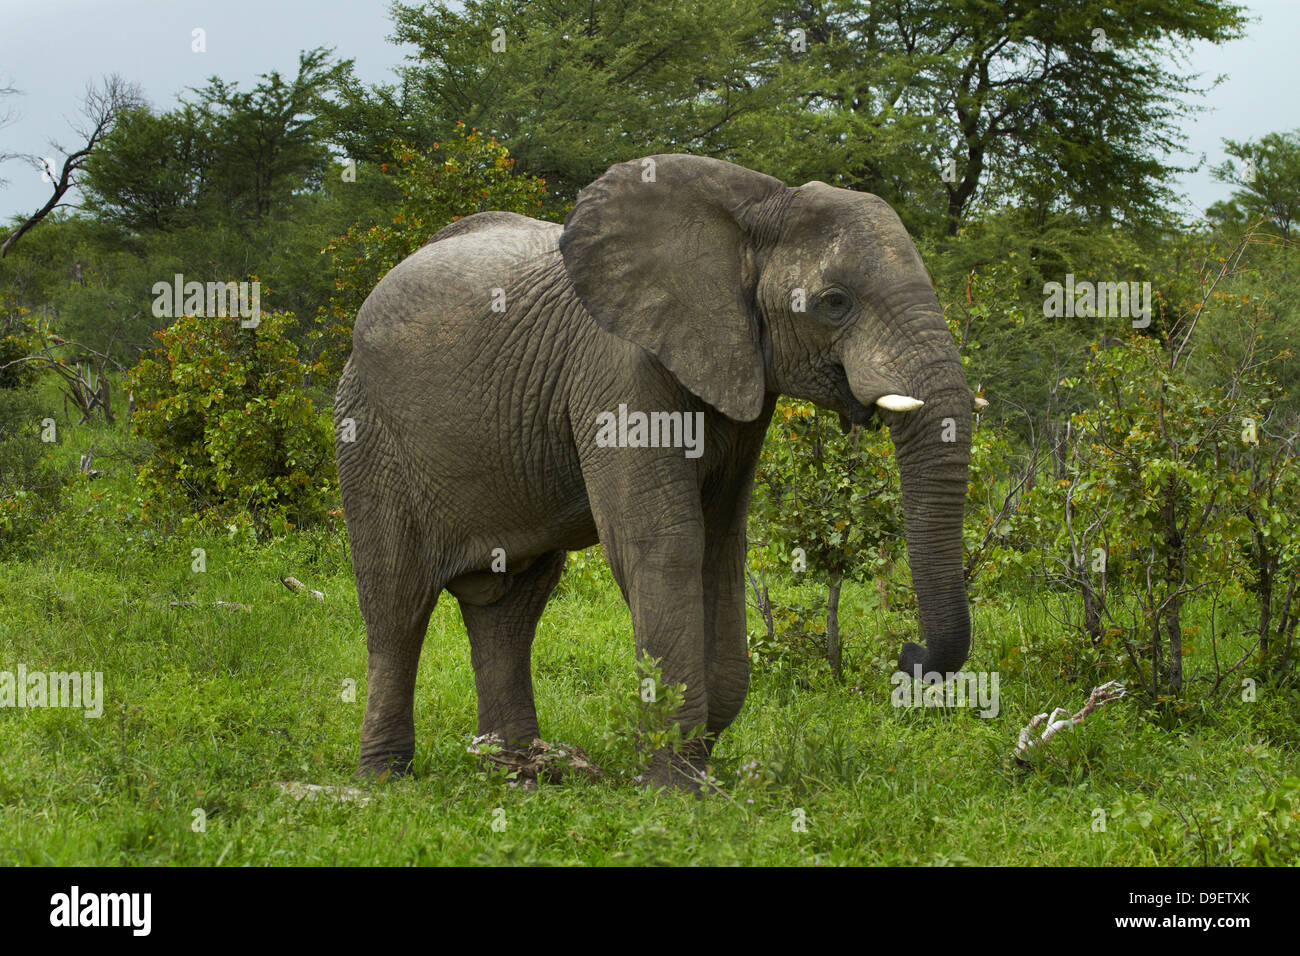 Elephant (Loxodonta africana), beside Nata - Kasane Road, Botswana, Africa Stock Photo